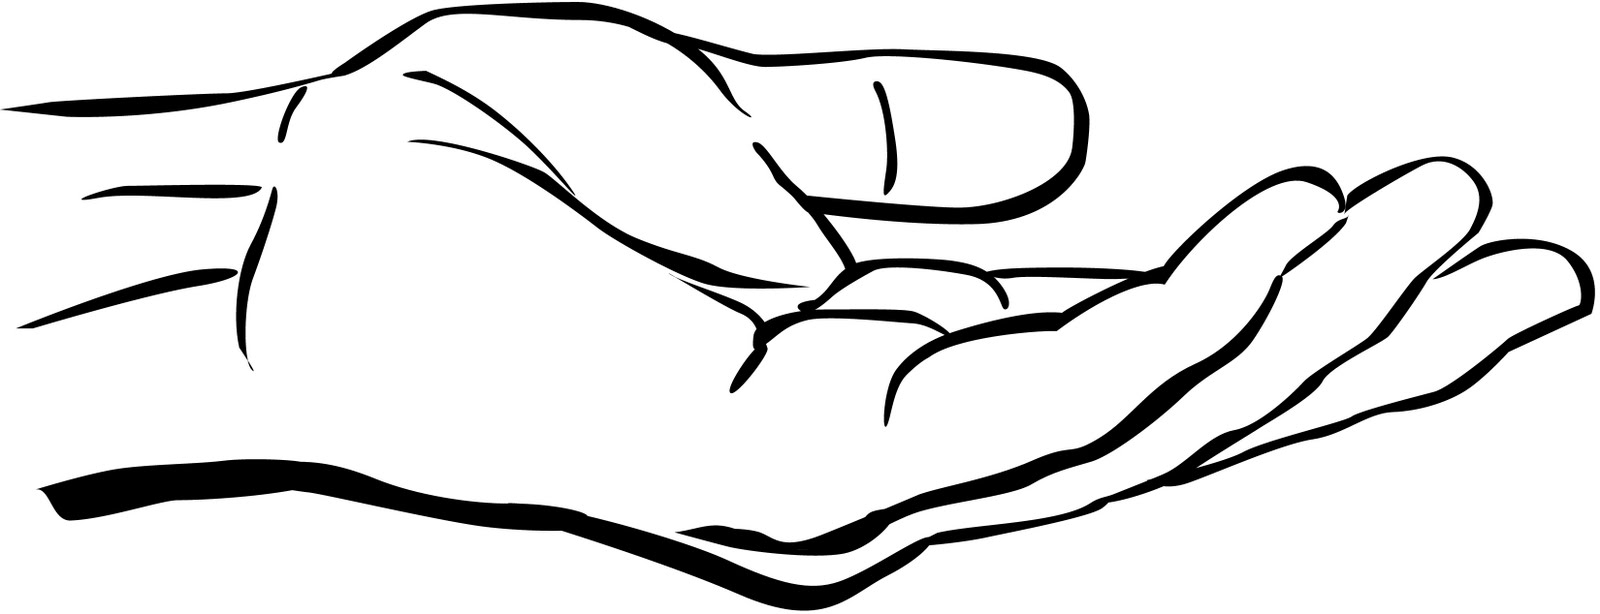 hands clipart black and white - Hands Clipart Black And White